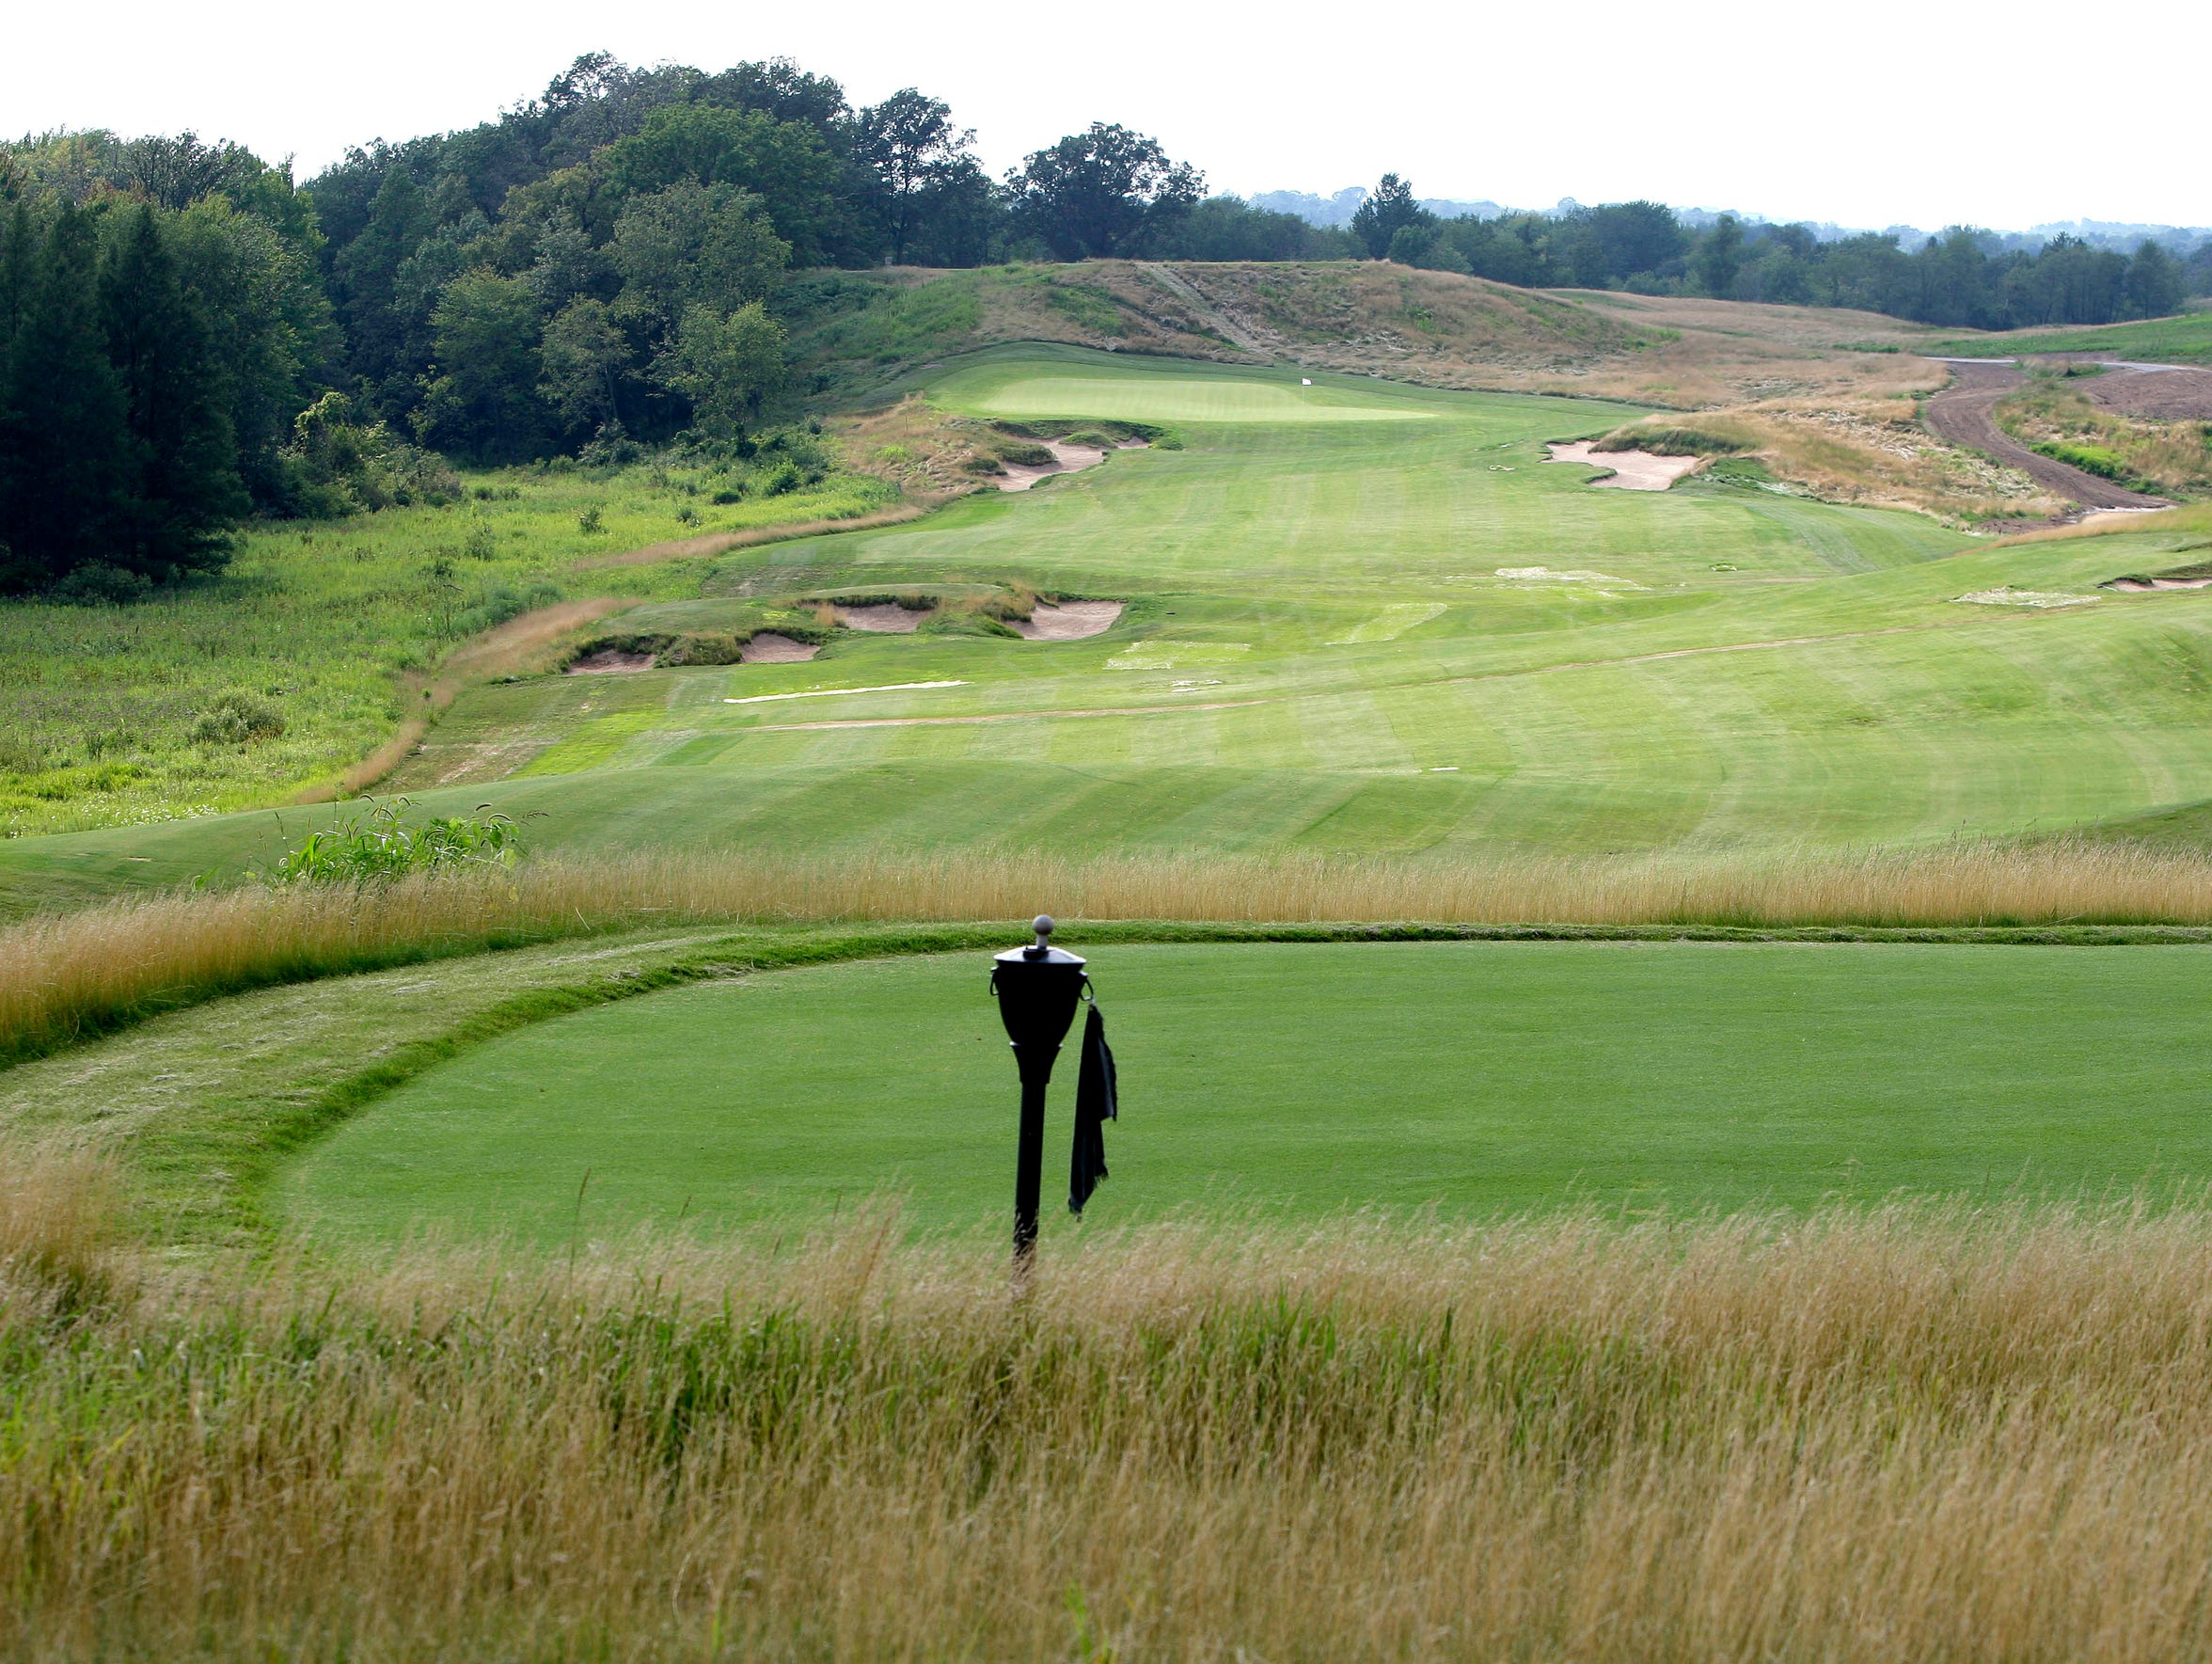 When Erin Hills reopened in the summer of 2010 after